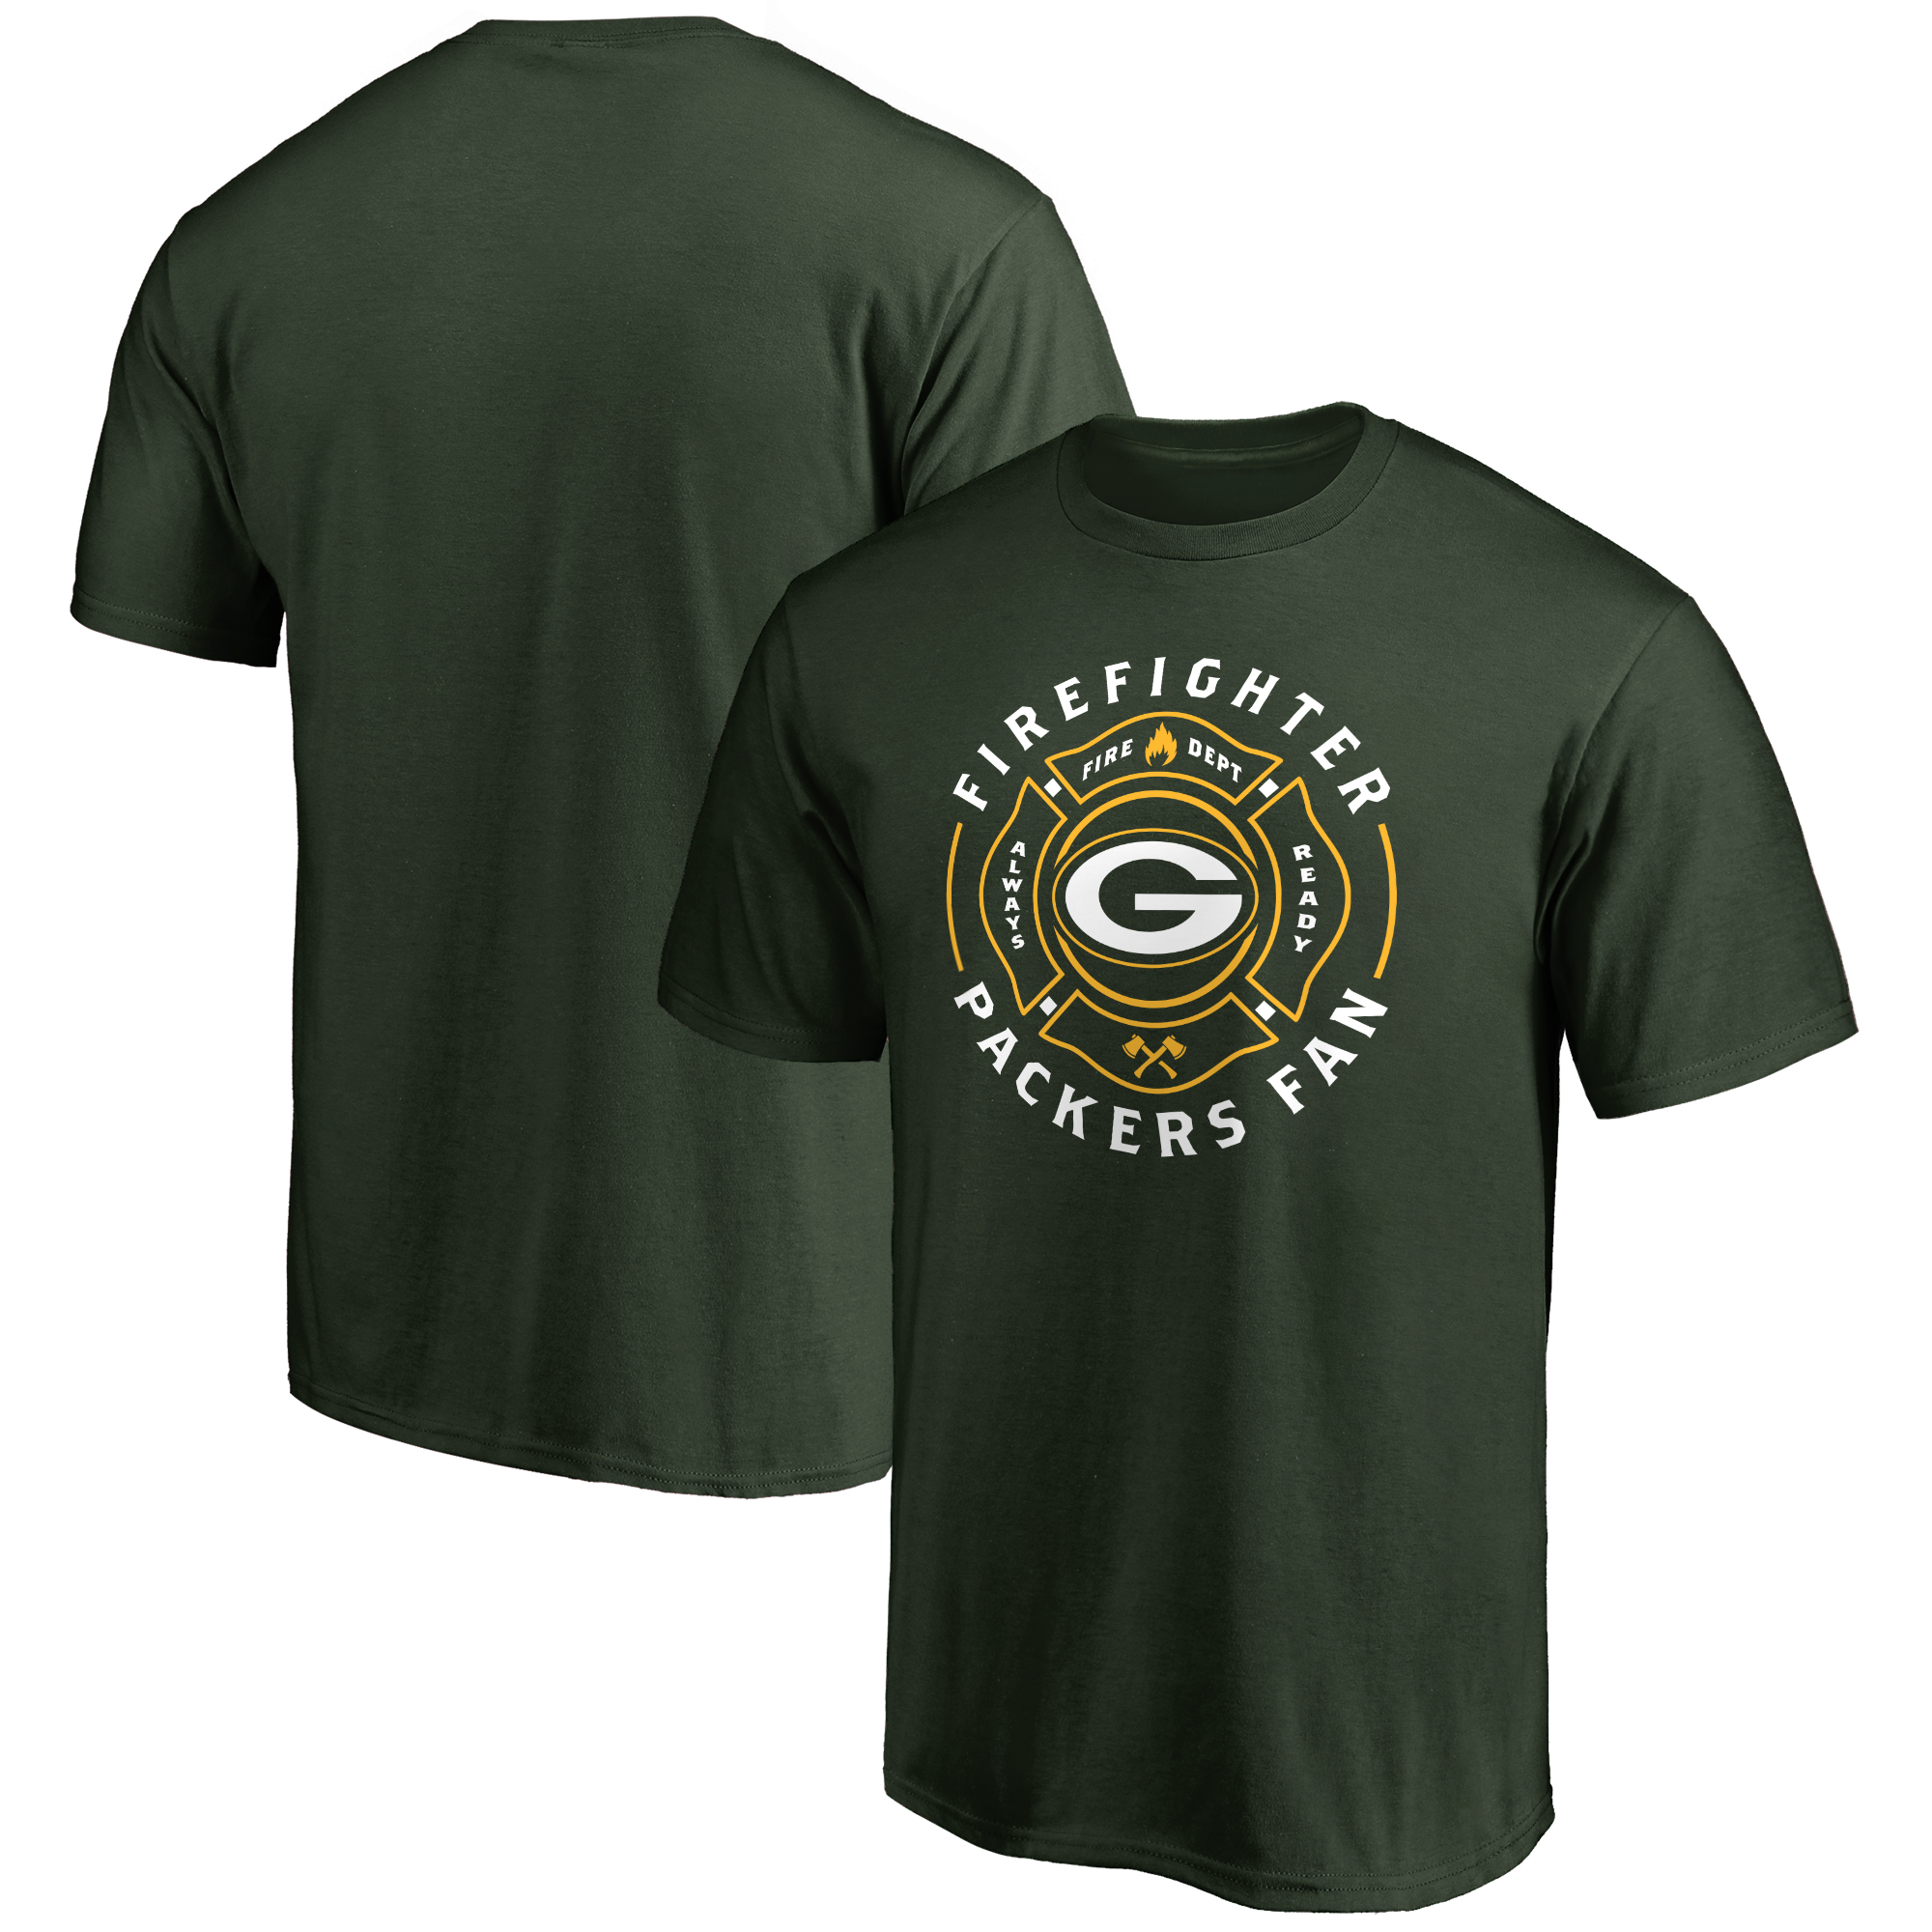 Green Bay Packers NFL Pro Line Firefighter T-Shirt - Green